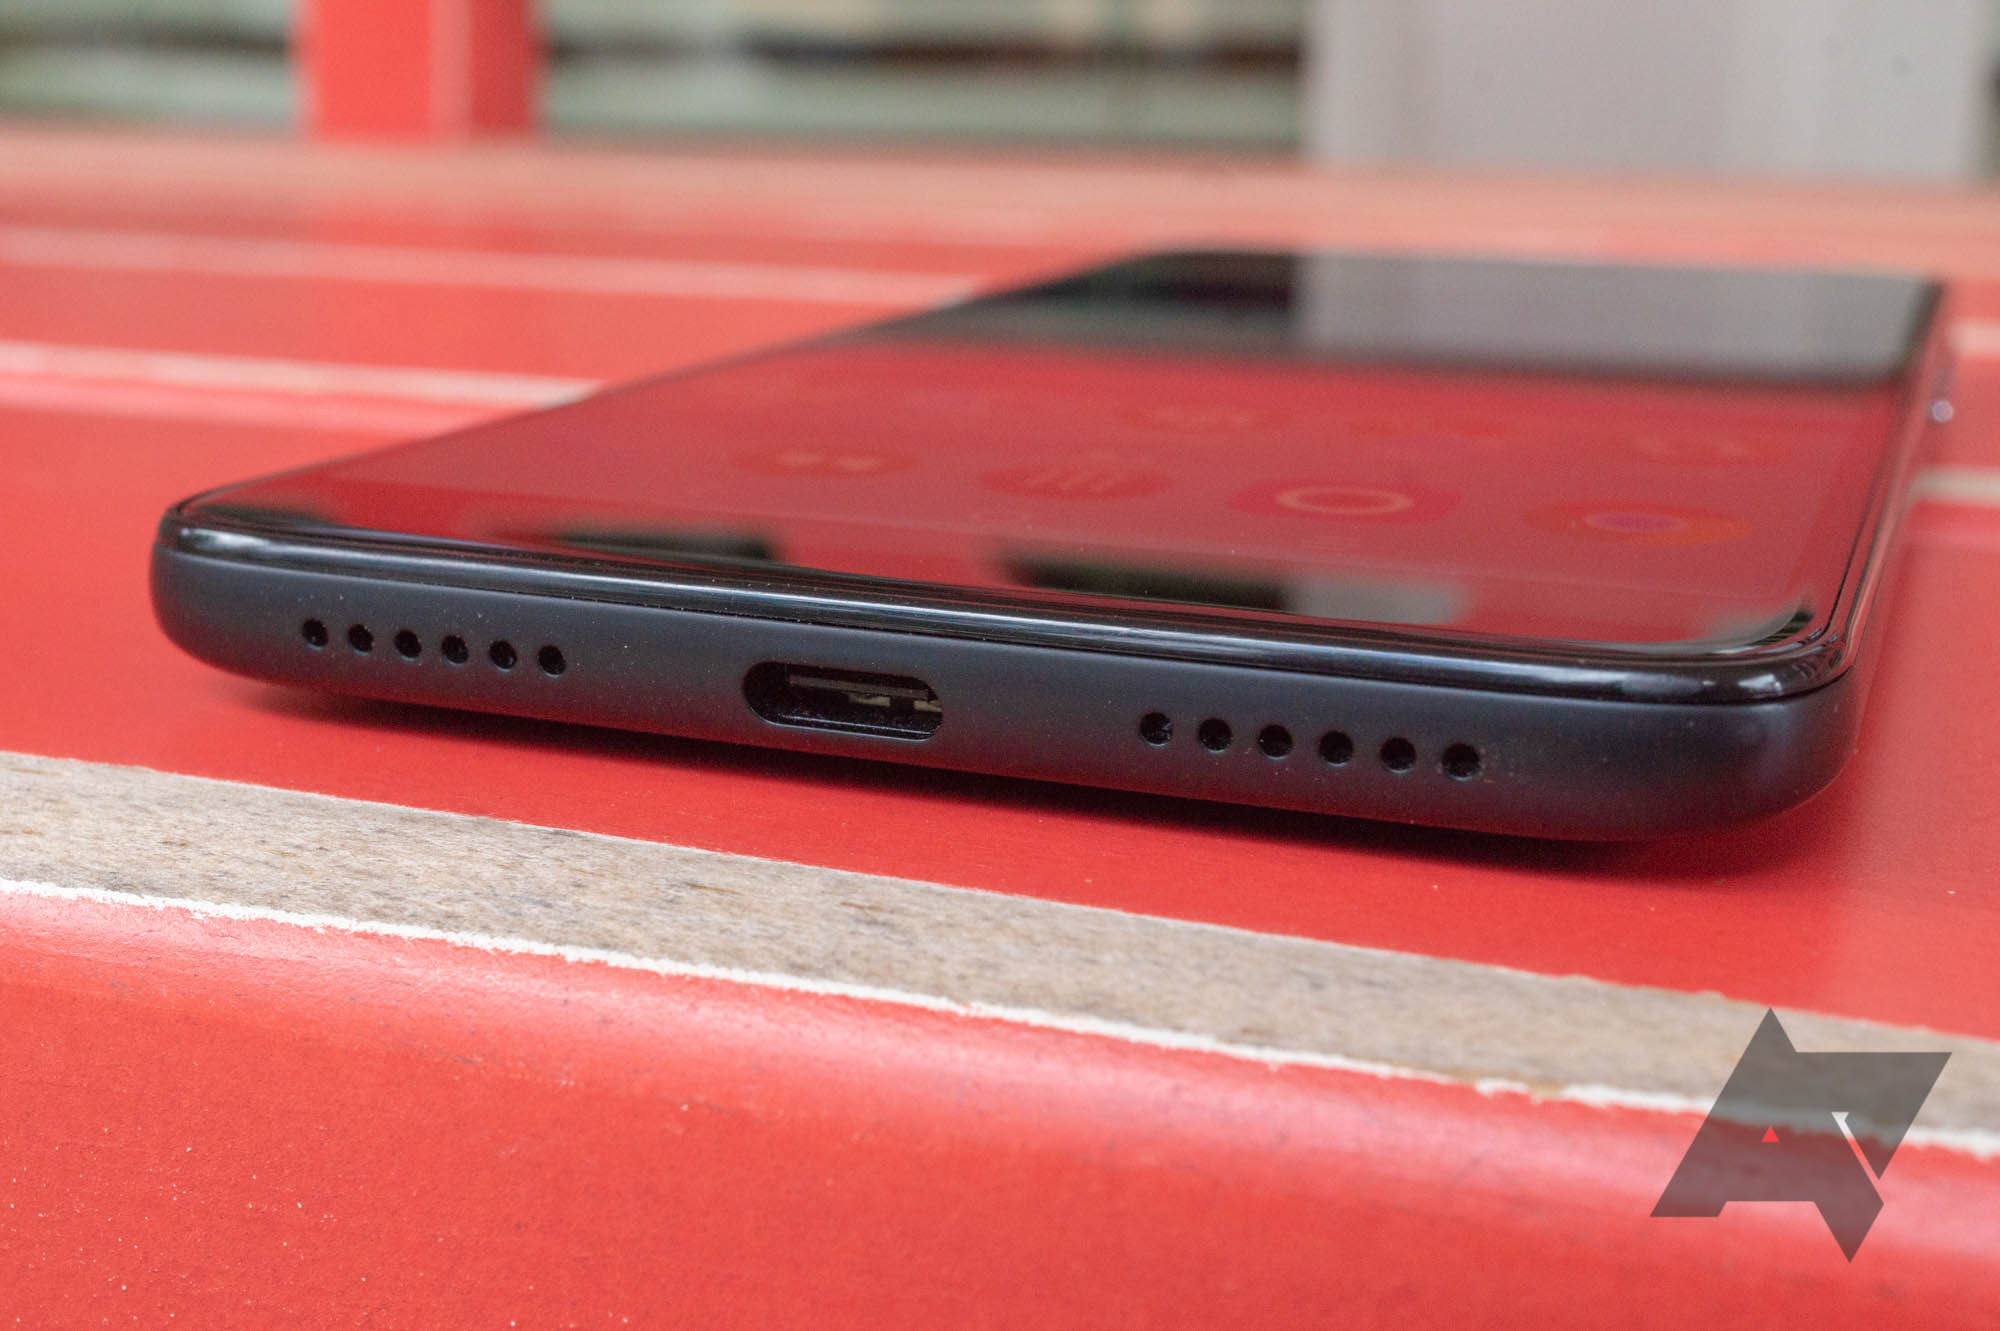 Alcatel 7 review: A decent budget phone with one major drawback